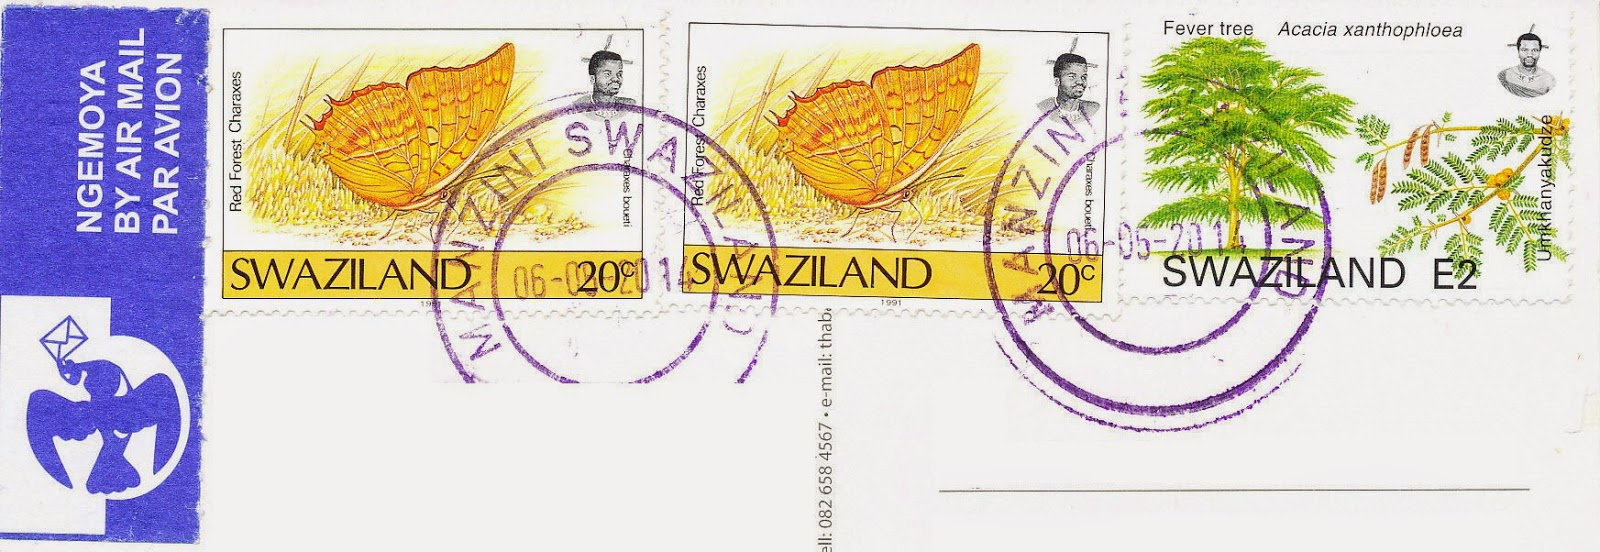 red forest charaxes, stamps, swaziland, fever tree, acacia xanthophloea